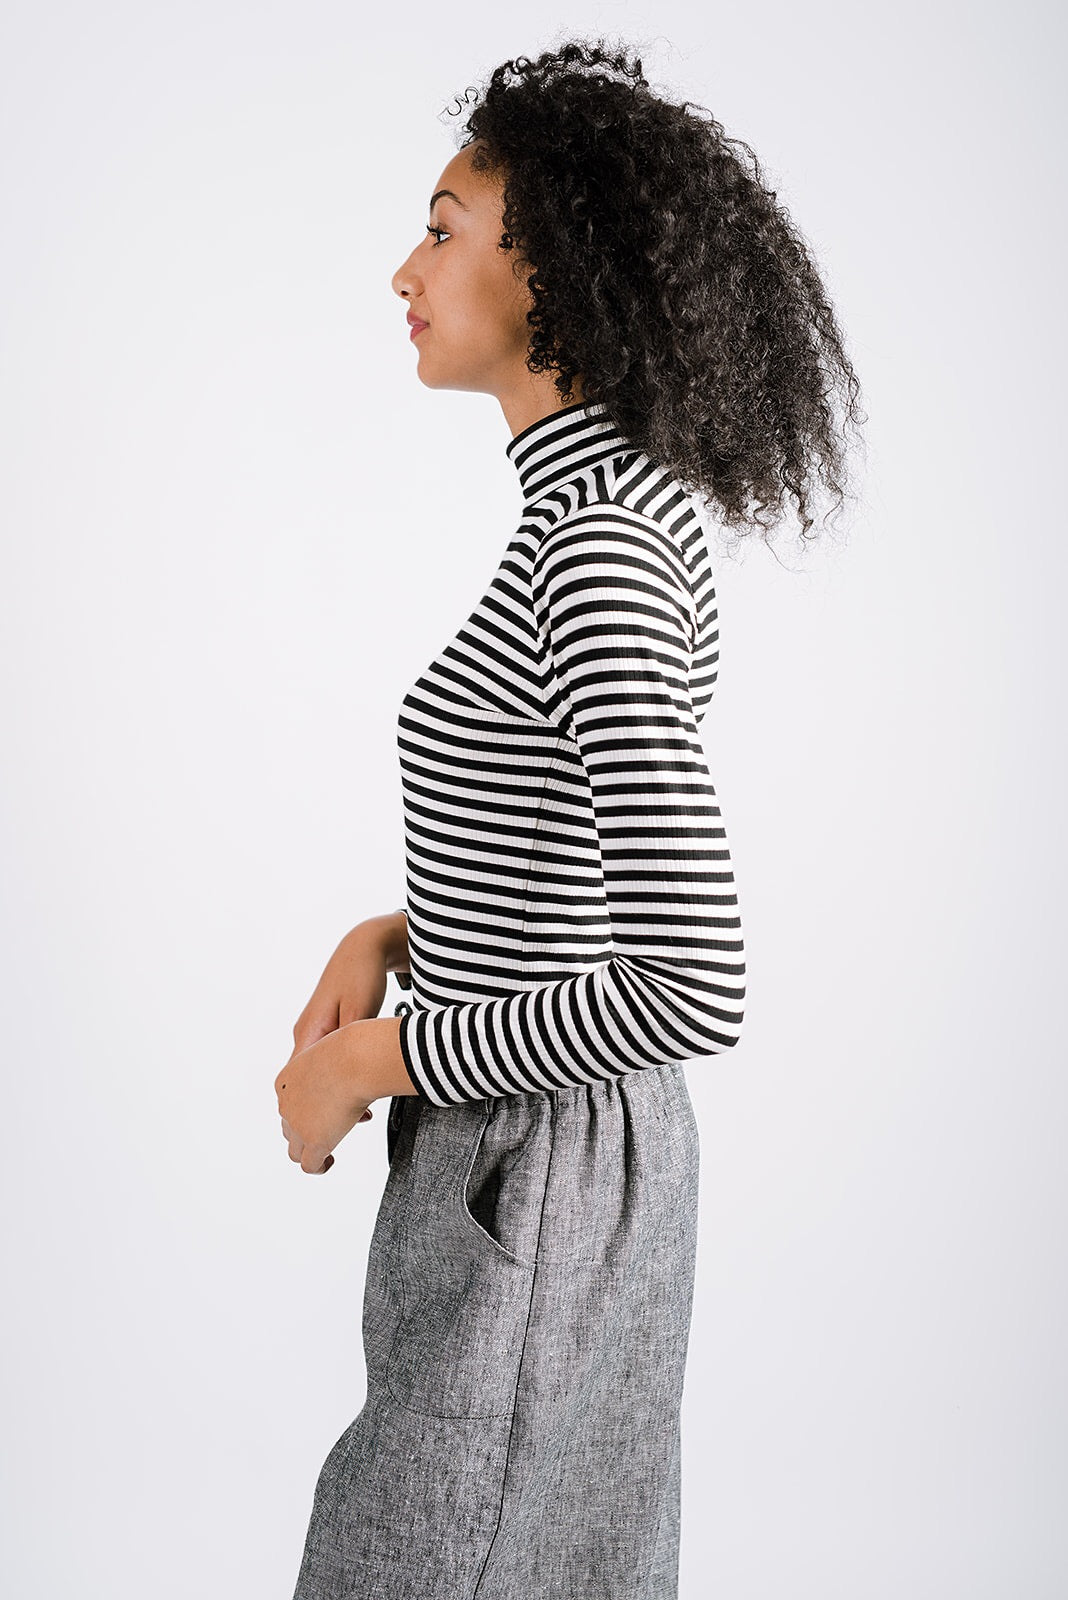 Rhoda Mock Neck | City Stripe Black